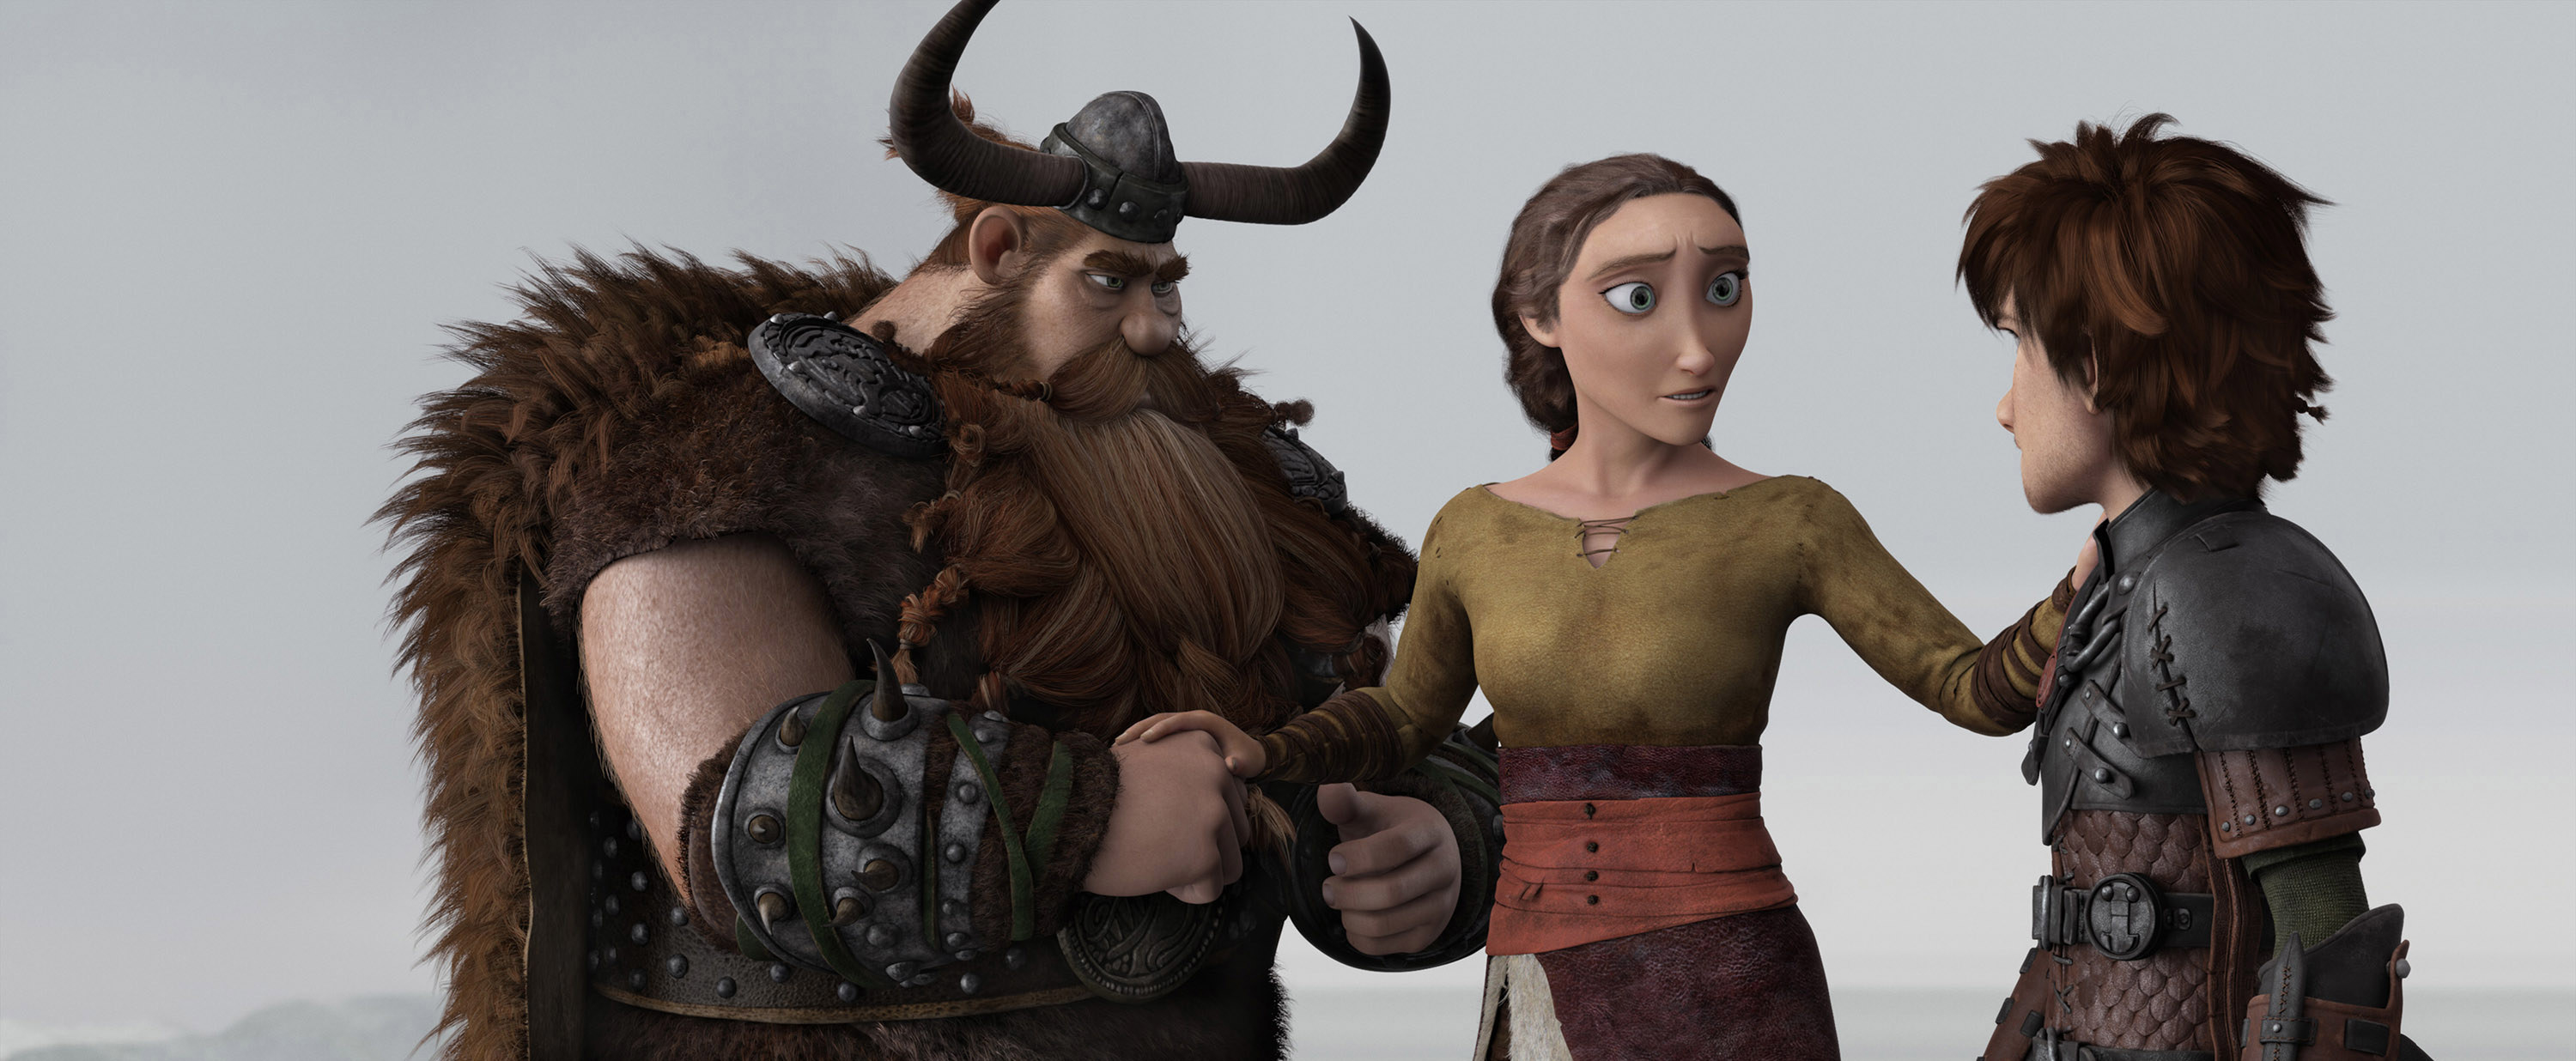 Stoick, Valka, and Hiccup